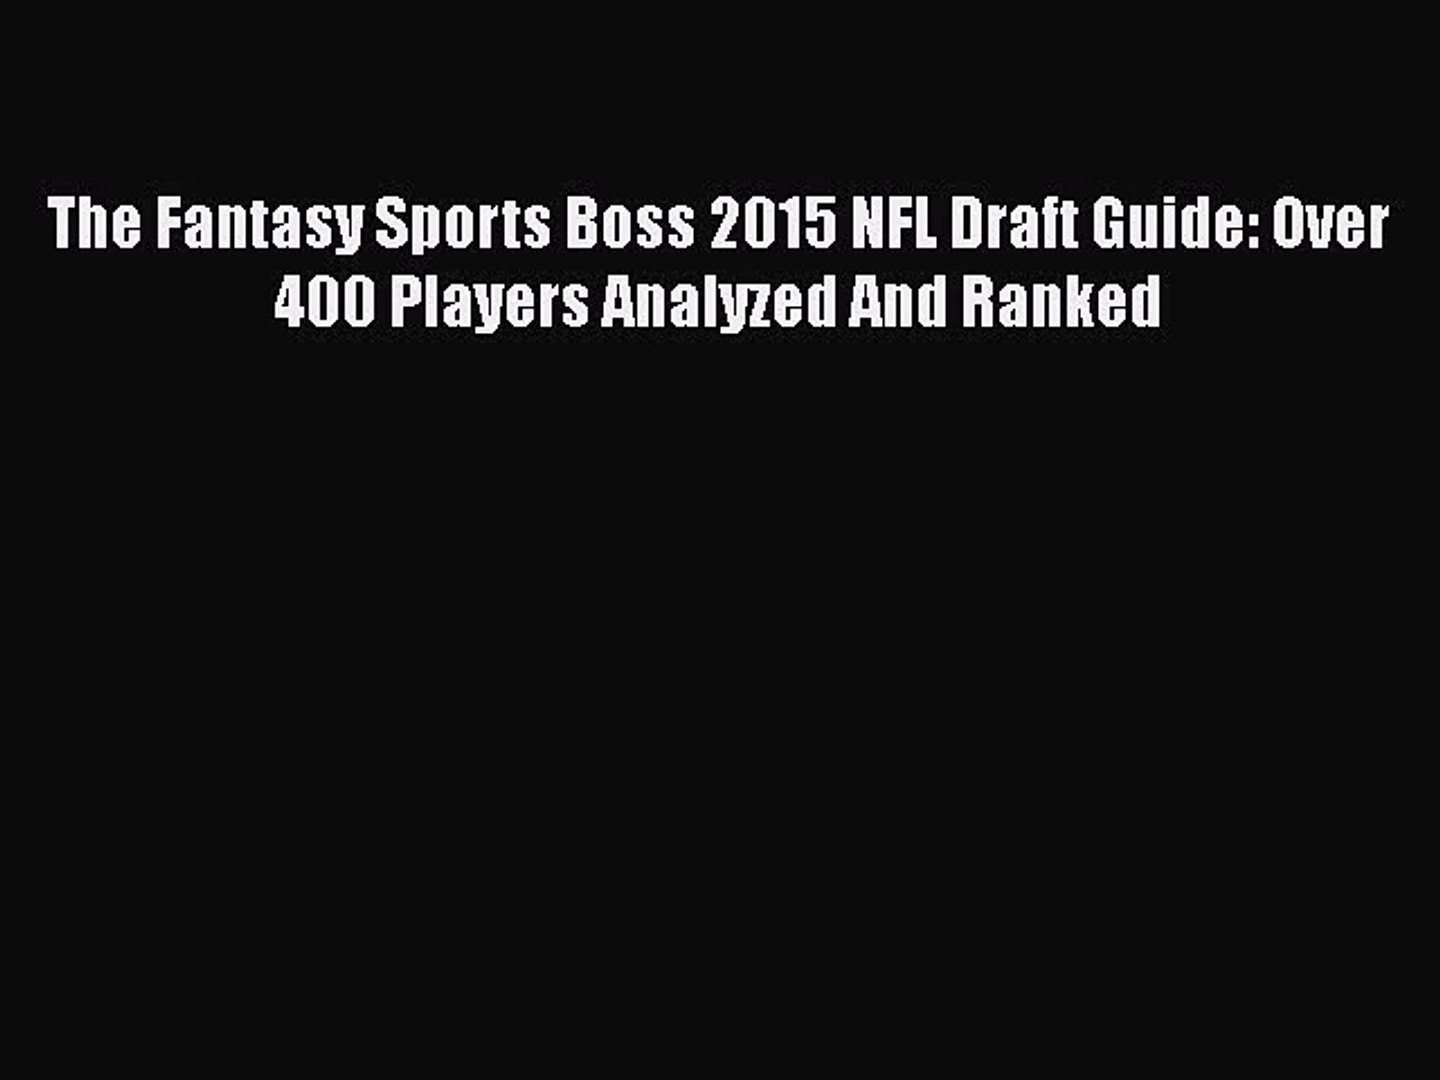 Download The Fantasy Sports Boss 2015 NFL Draft Guide: Over 400 Players Analyzed And Ranked